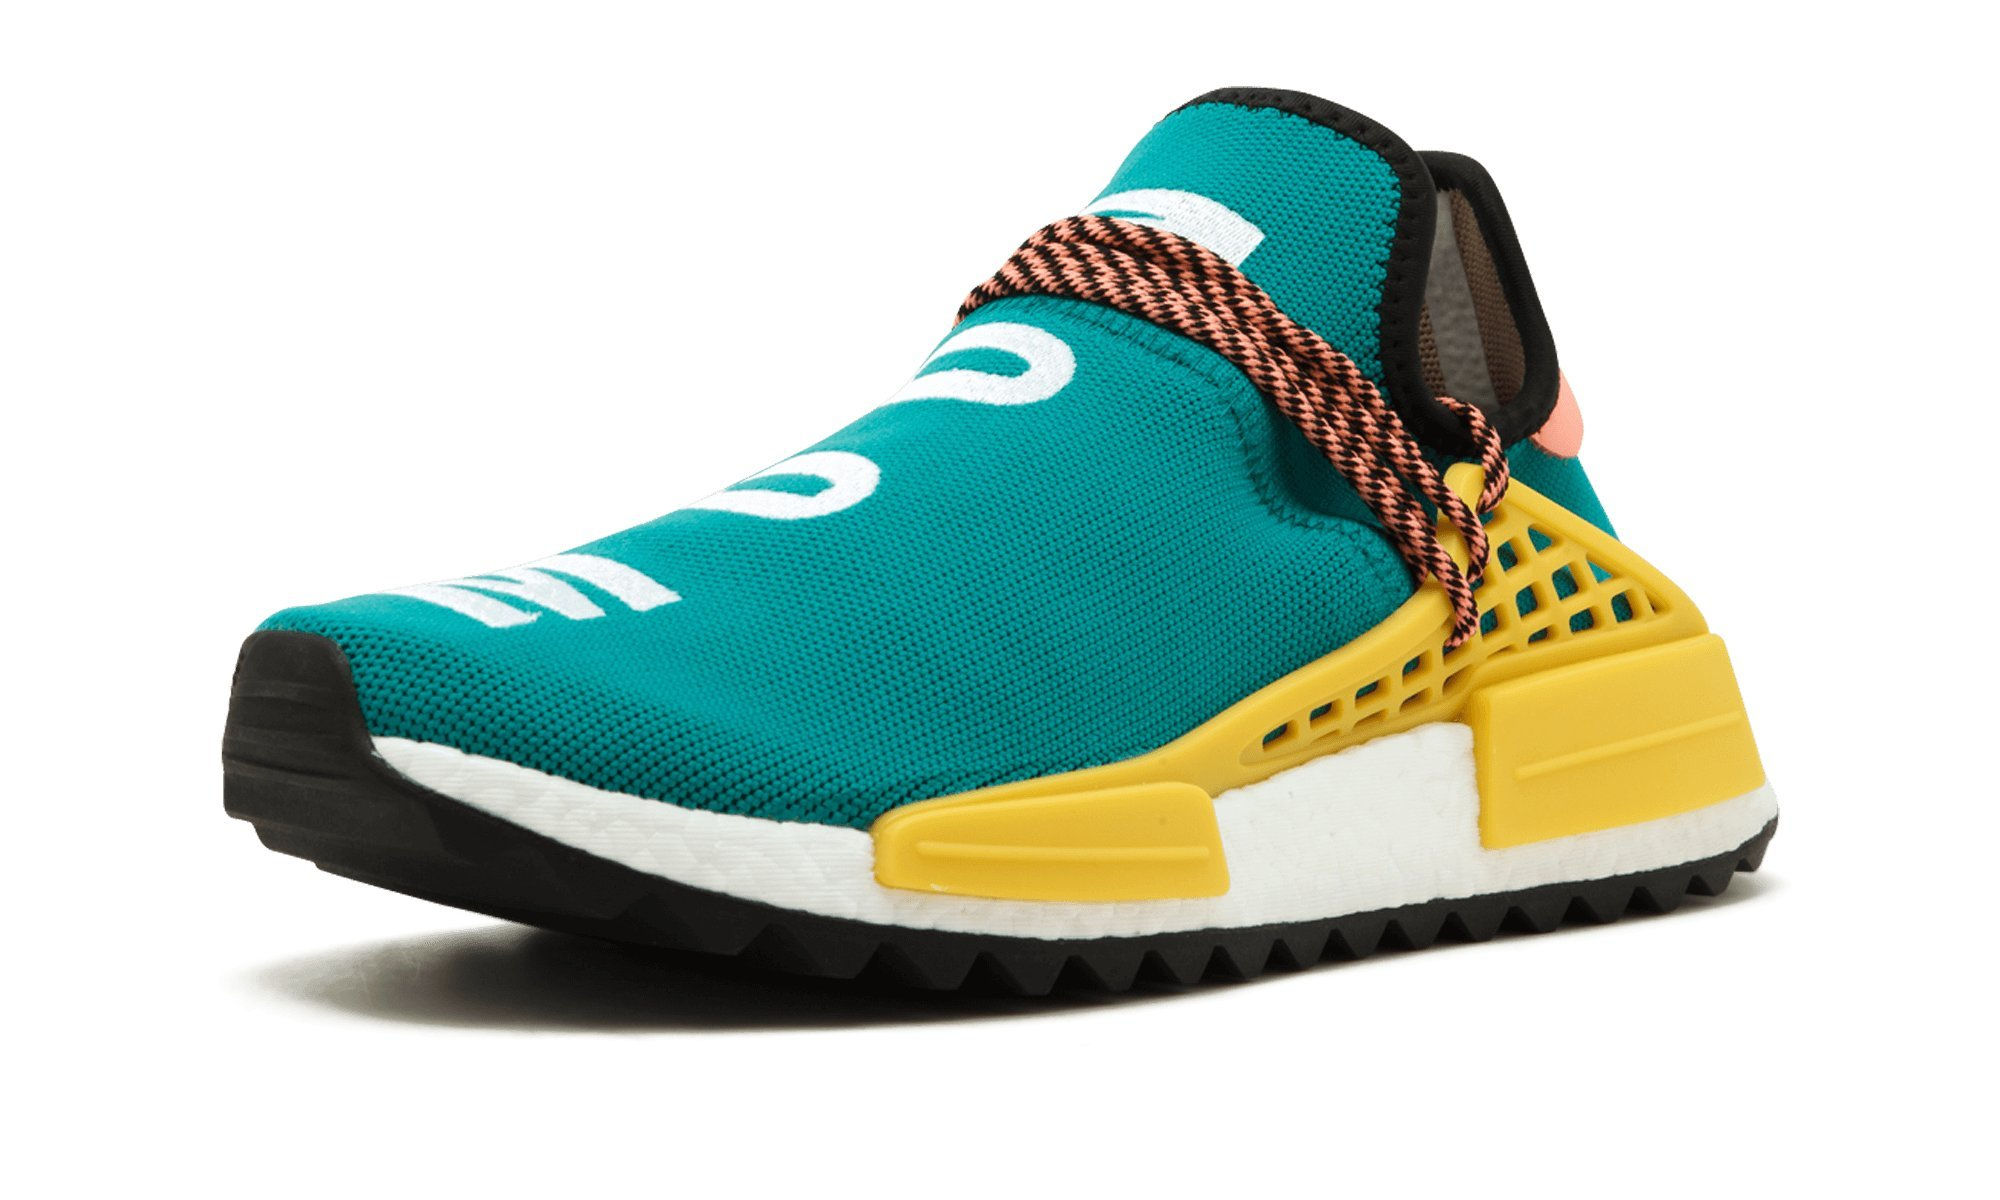 b969ba7e0ad Adidas Nmd Human Race 8 Top Deals   Lowest Price